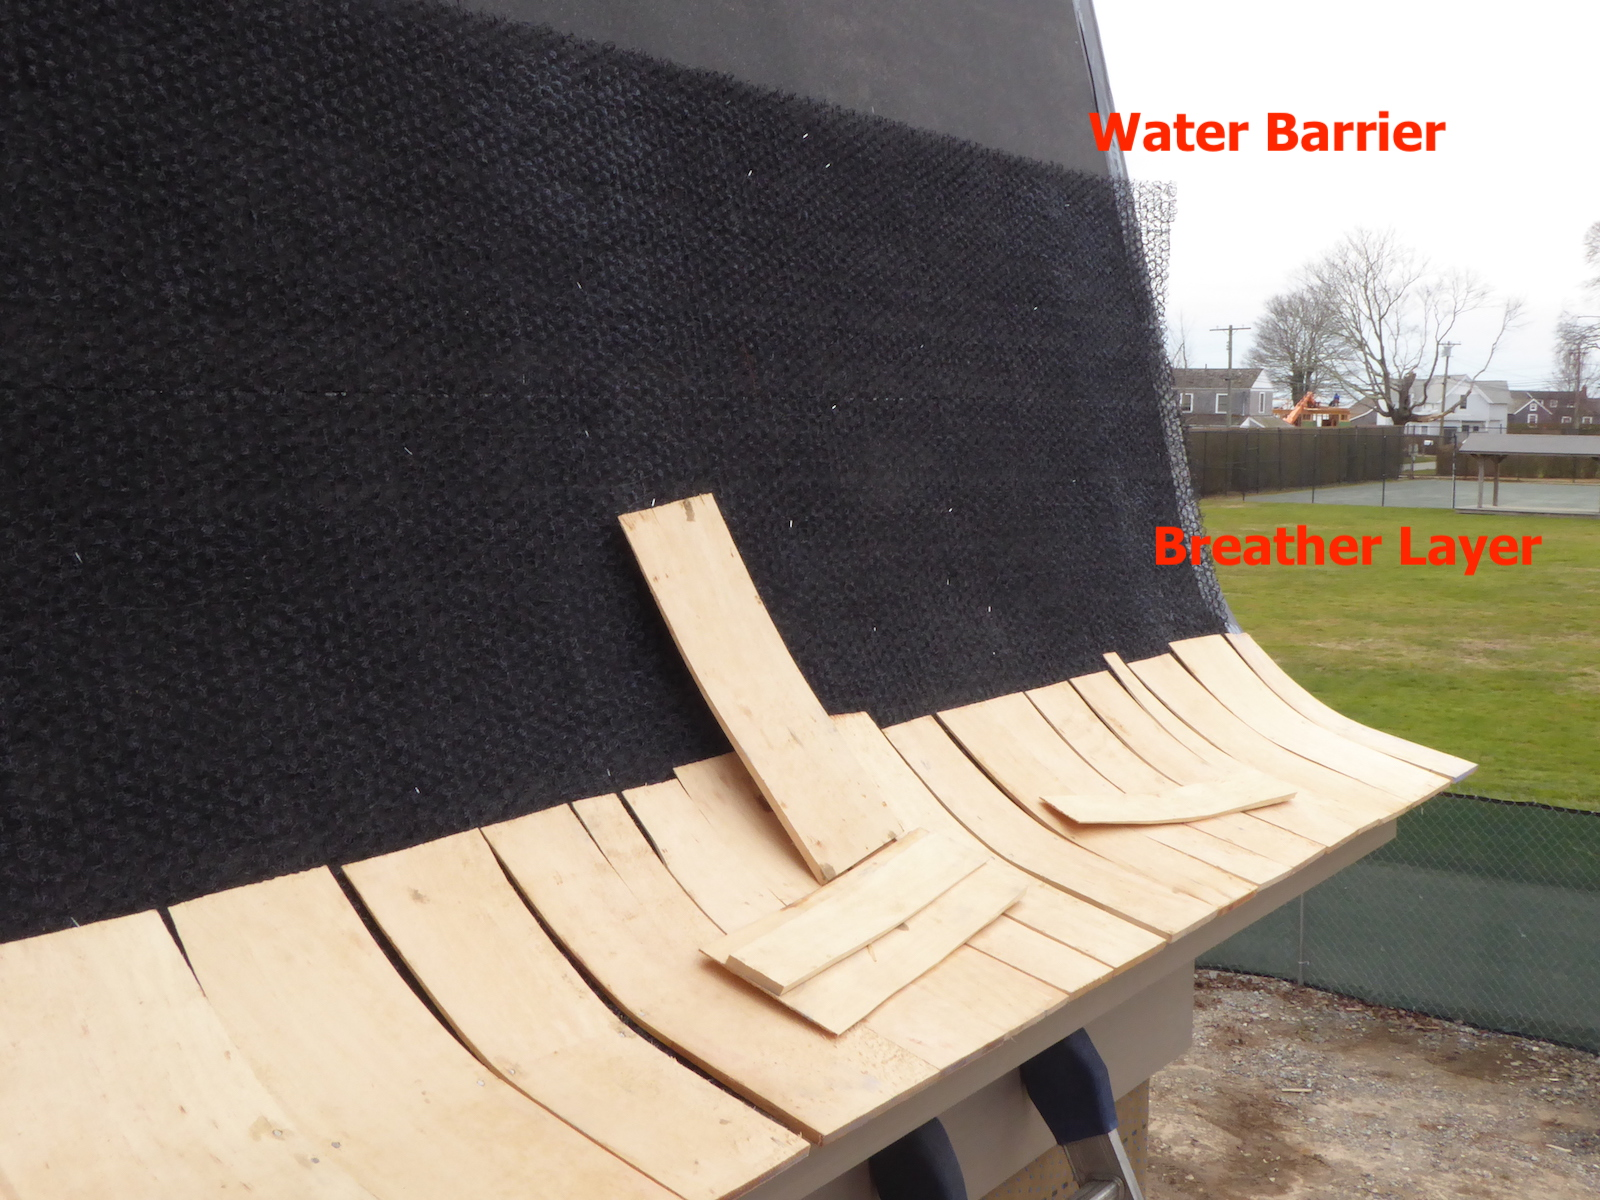 Depiction of Breather Layer and Water barrier Layer